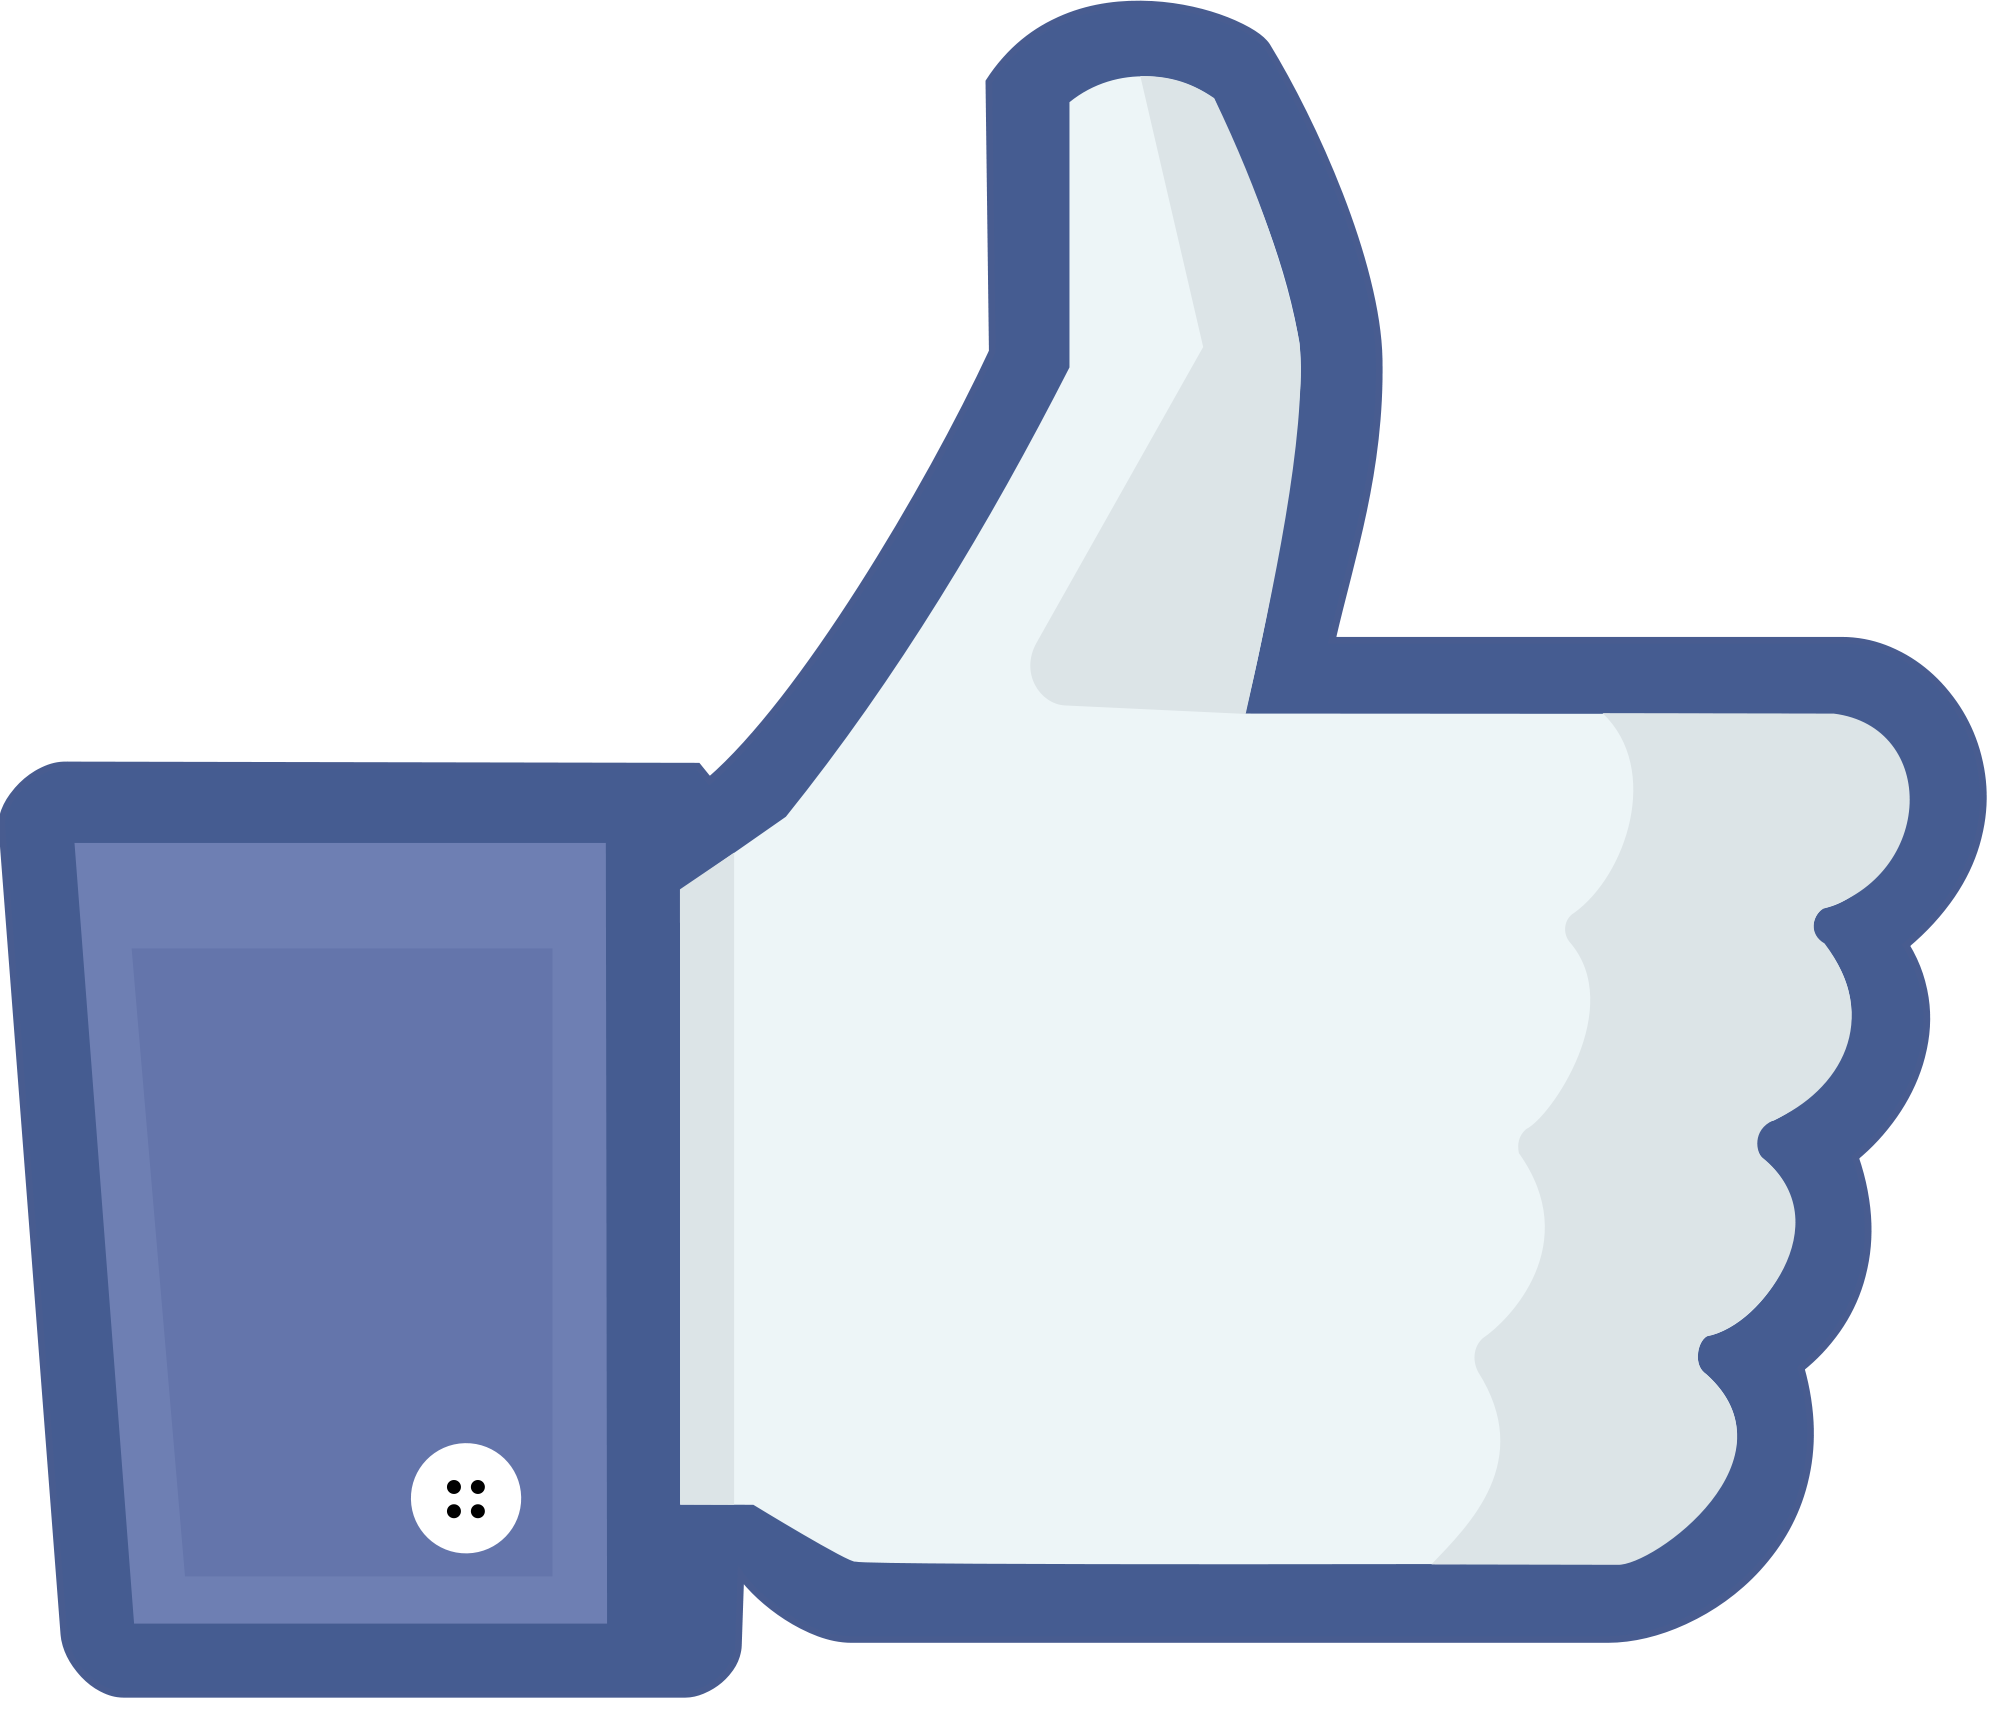 Facebook like button, Wikimedia, Public Domain